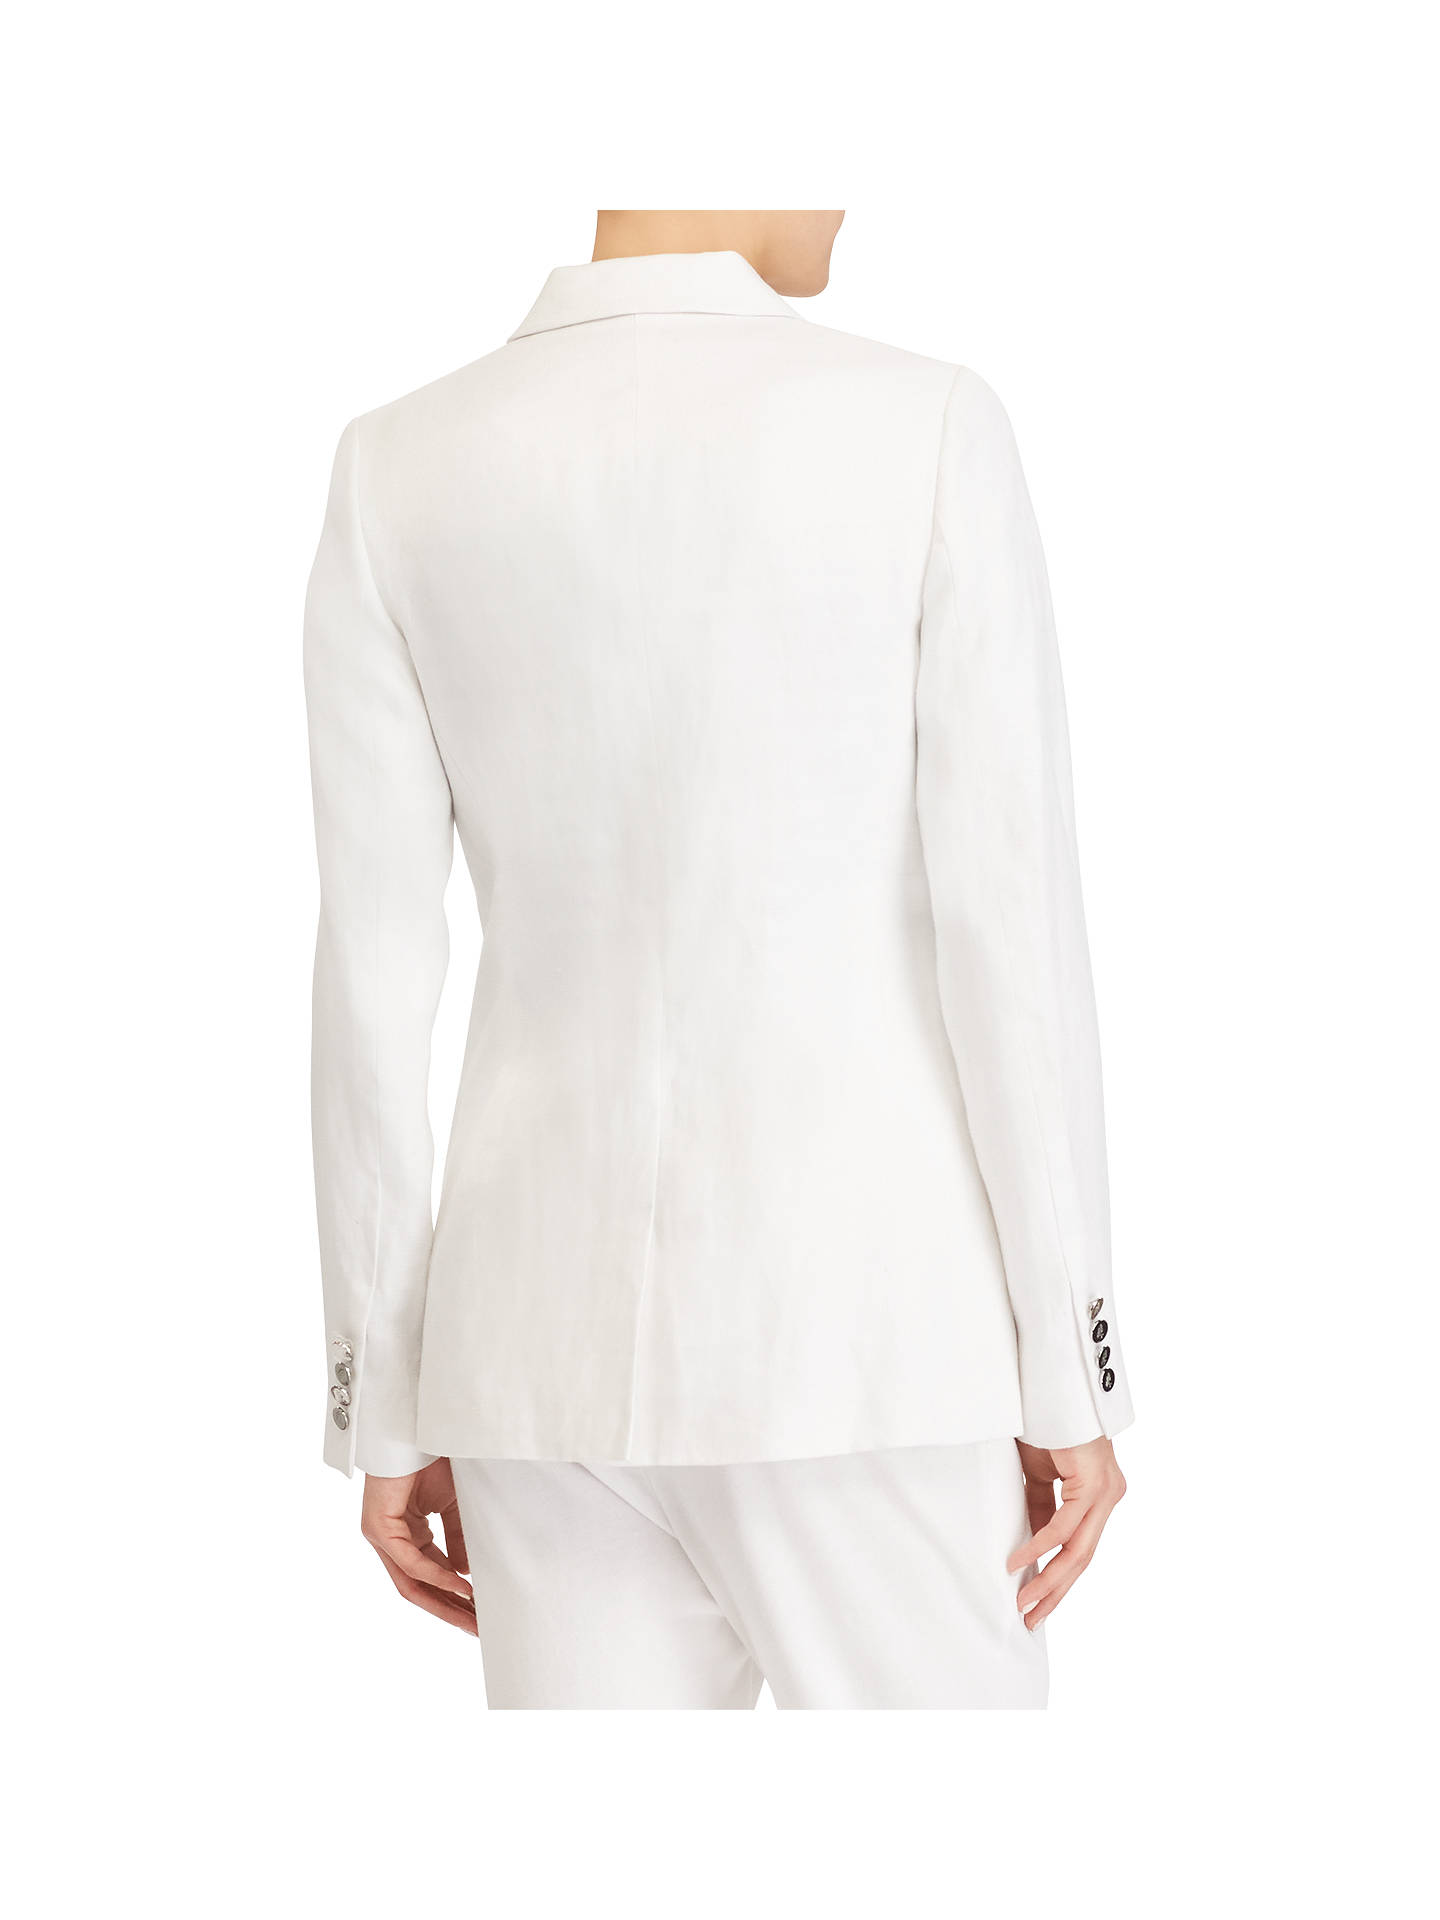 BuyPolo Ralph Lauren Vinnazzo Jacket, White, 6 Online at johnlewis.com